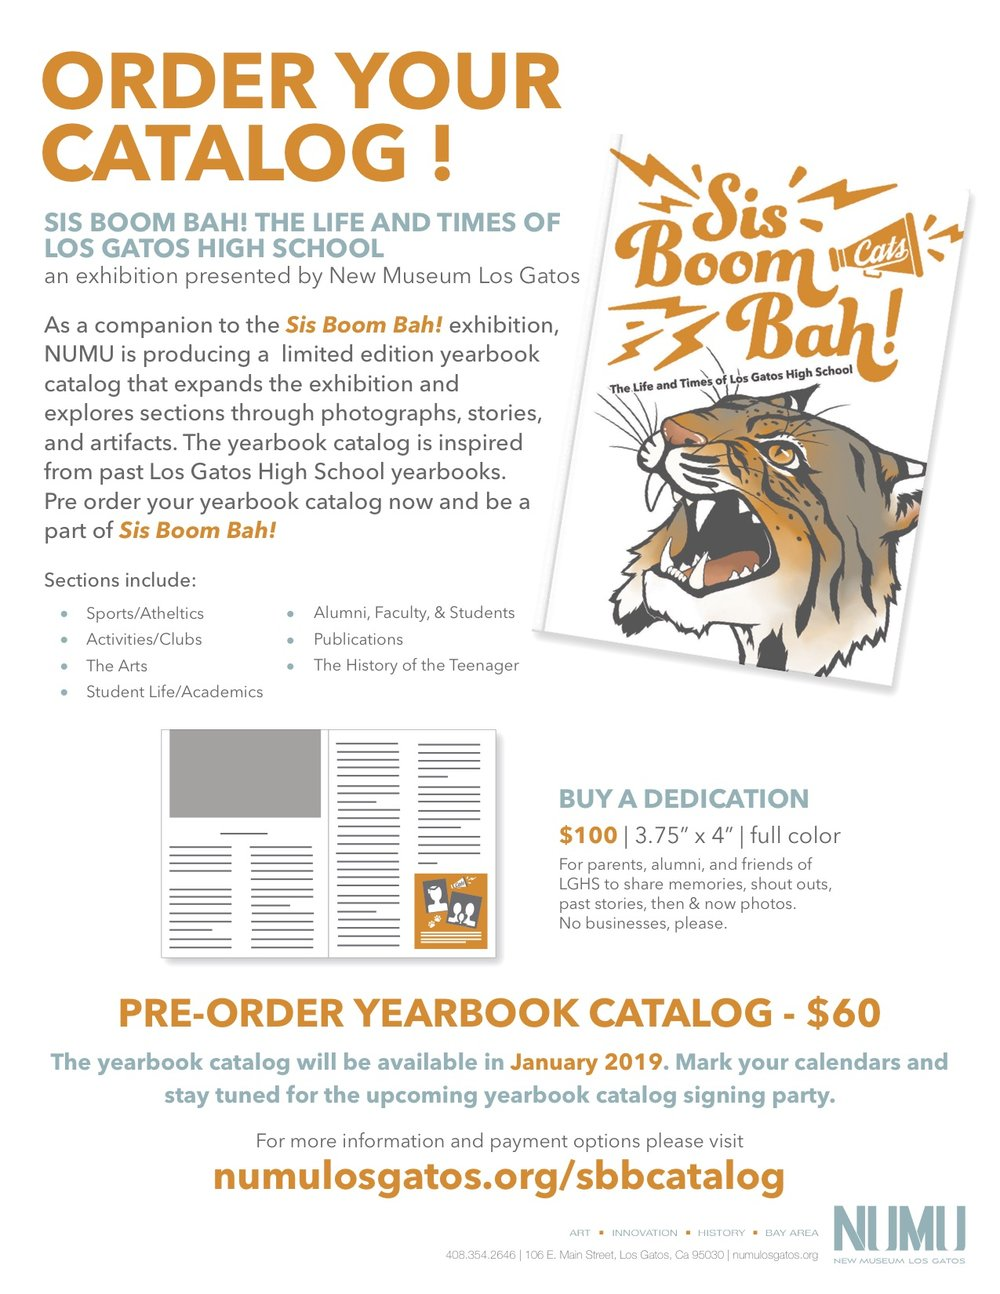 Yearbook catalog pre order form LGHS Exhibition Sis Boom Bah.jpg